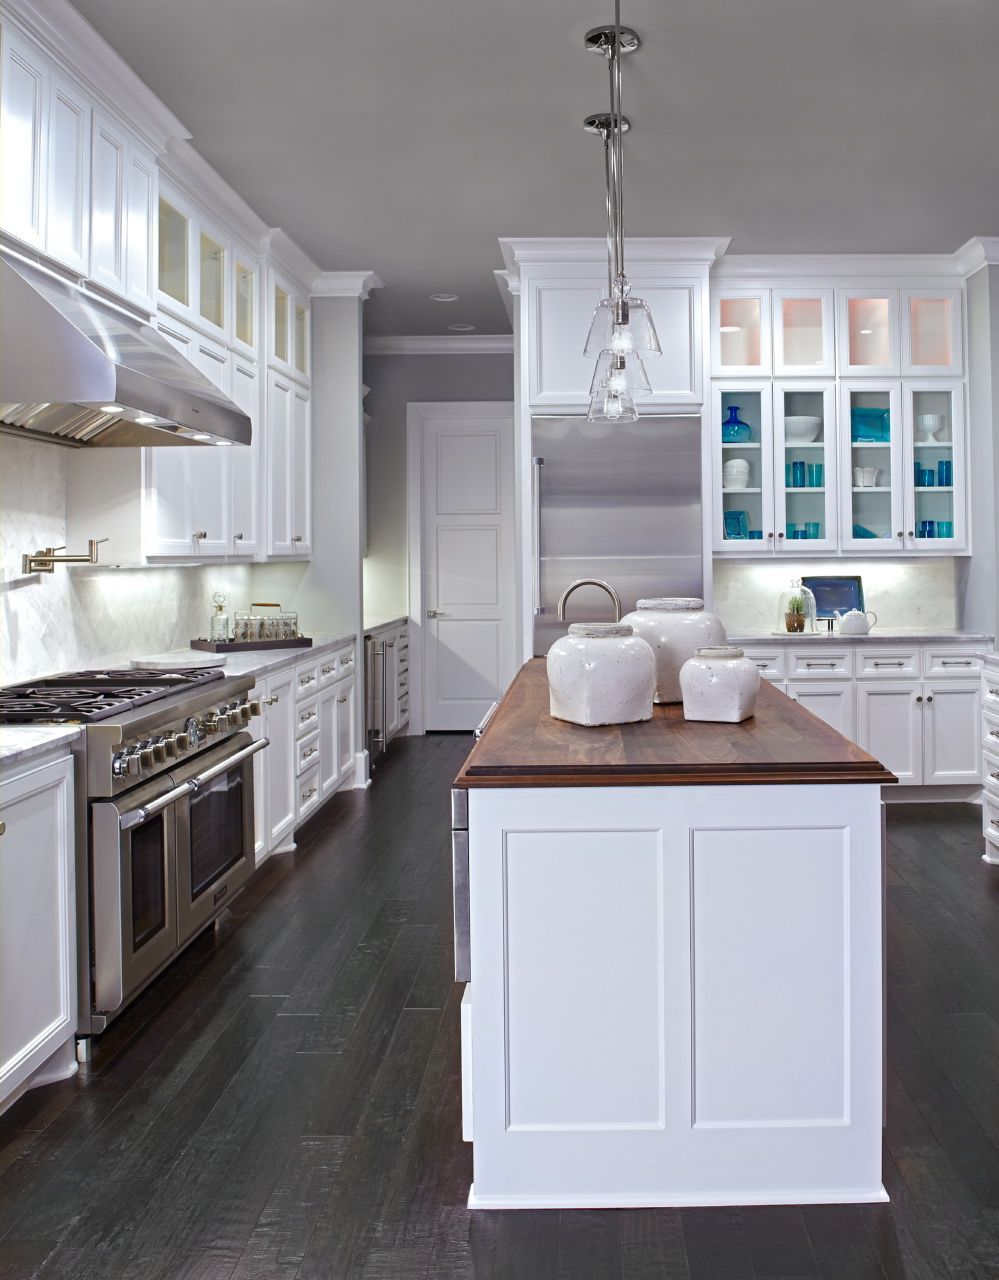 Kitchens With White Cabinets And Dark Floors Wood Countertop In Walnut On Antique White Kitchen White Kitchen Cabinets White Kitchen Remodeling